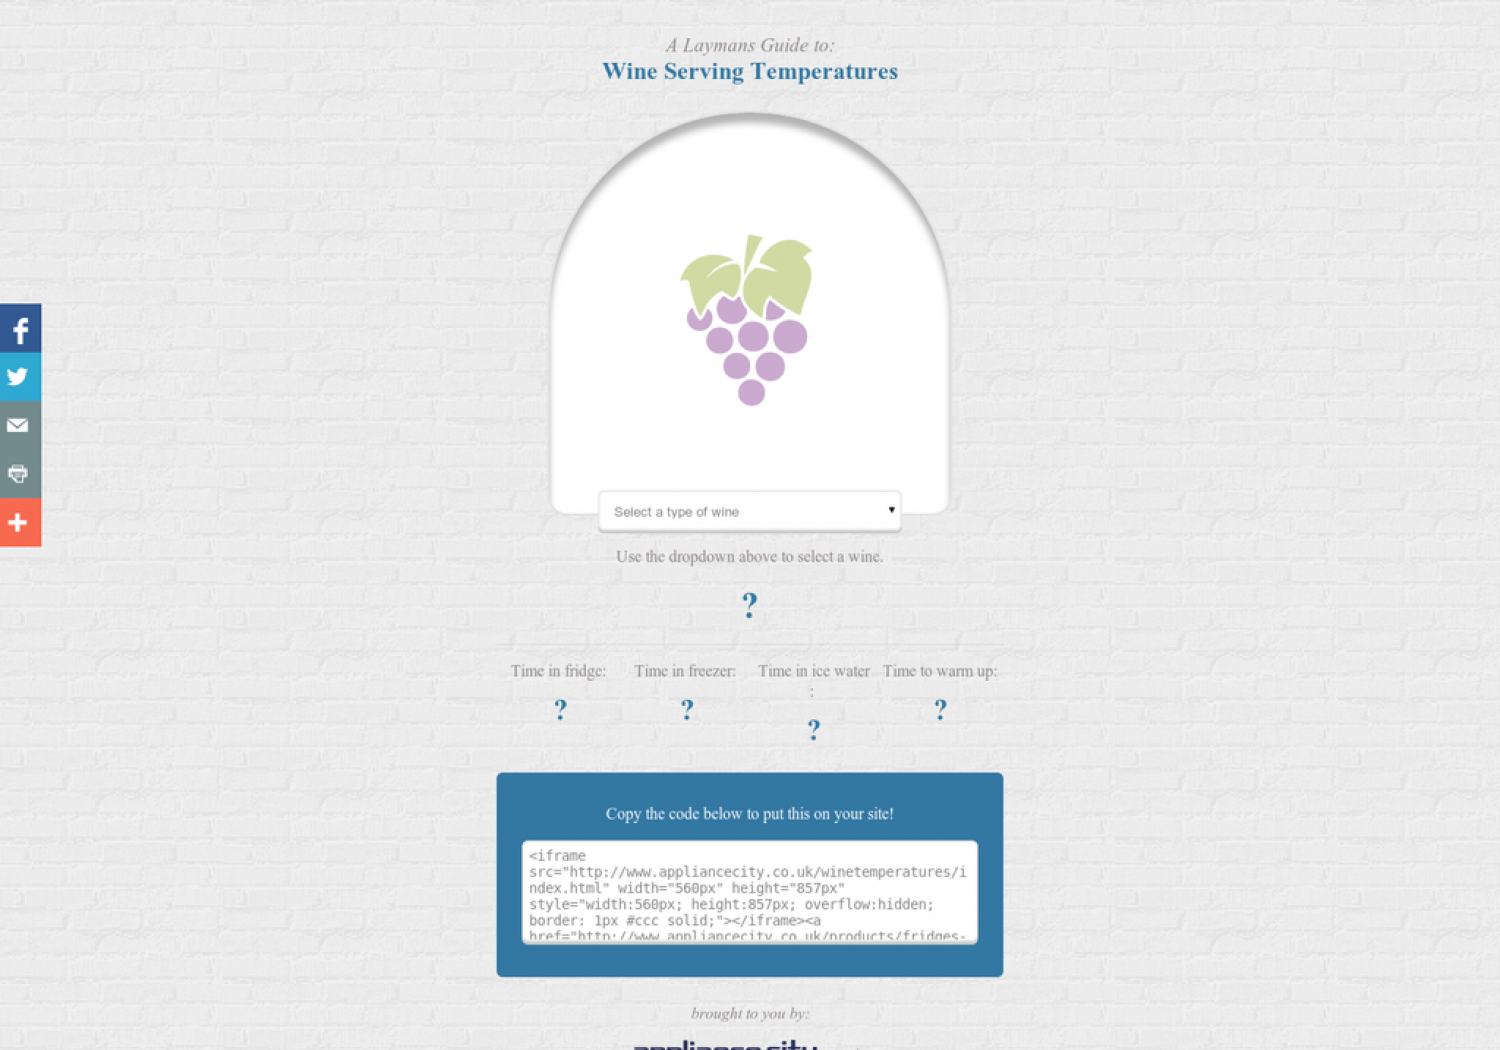 A Laymans Guide to: Wine Serving Temperatures Infographic